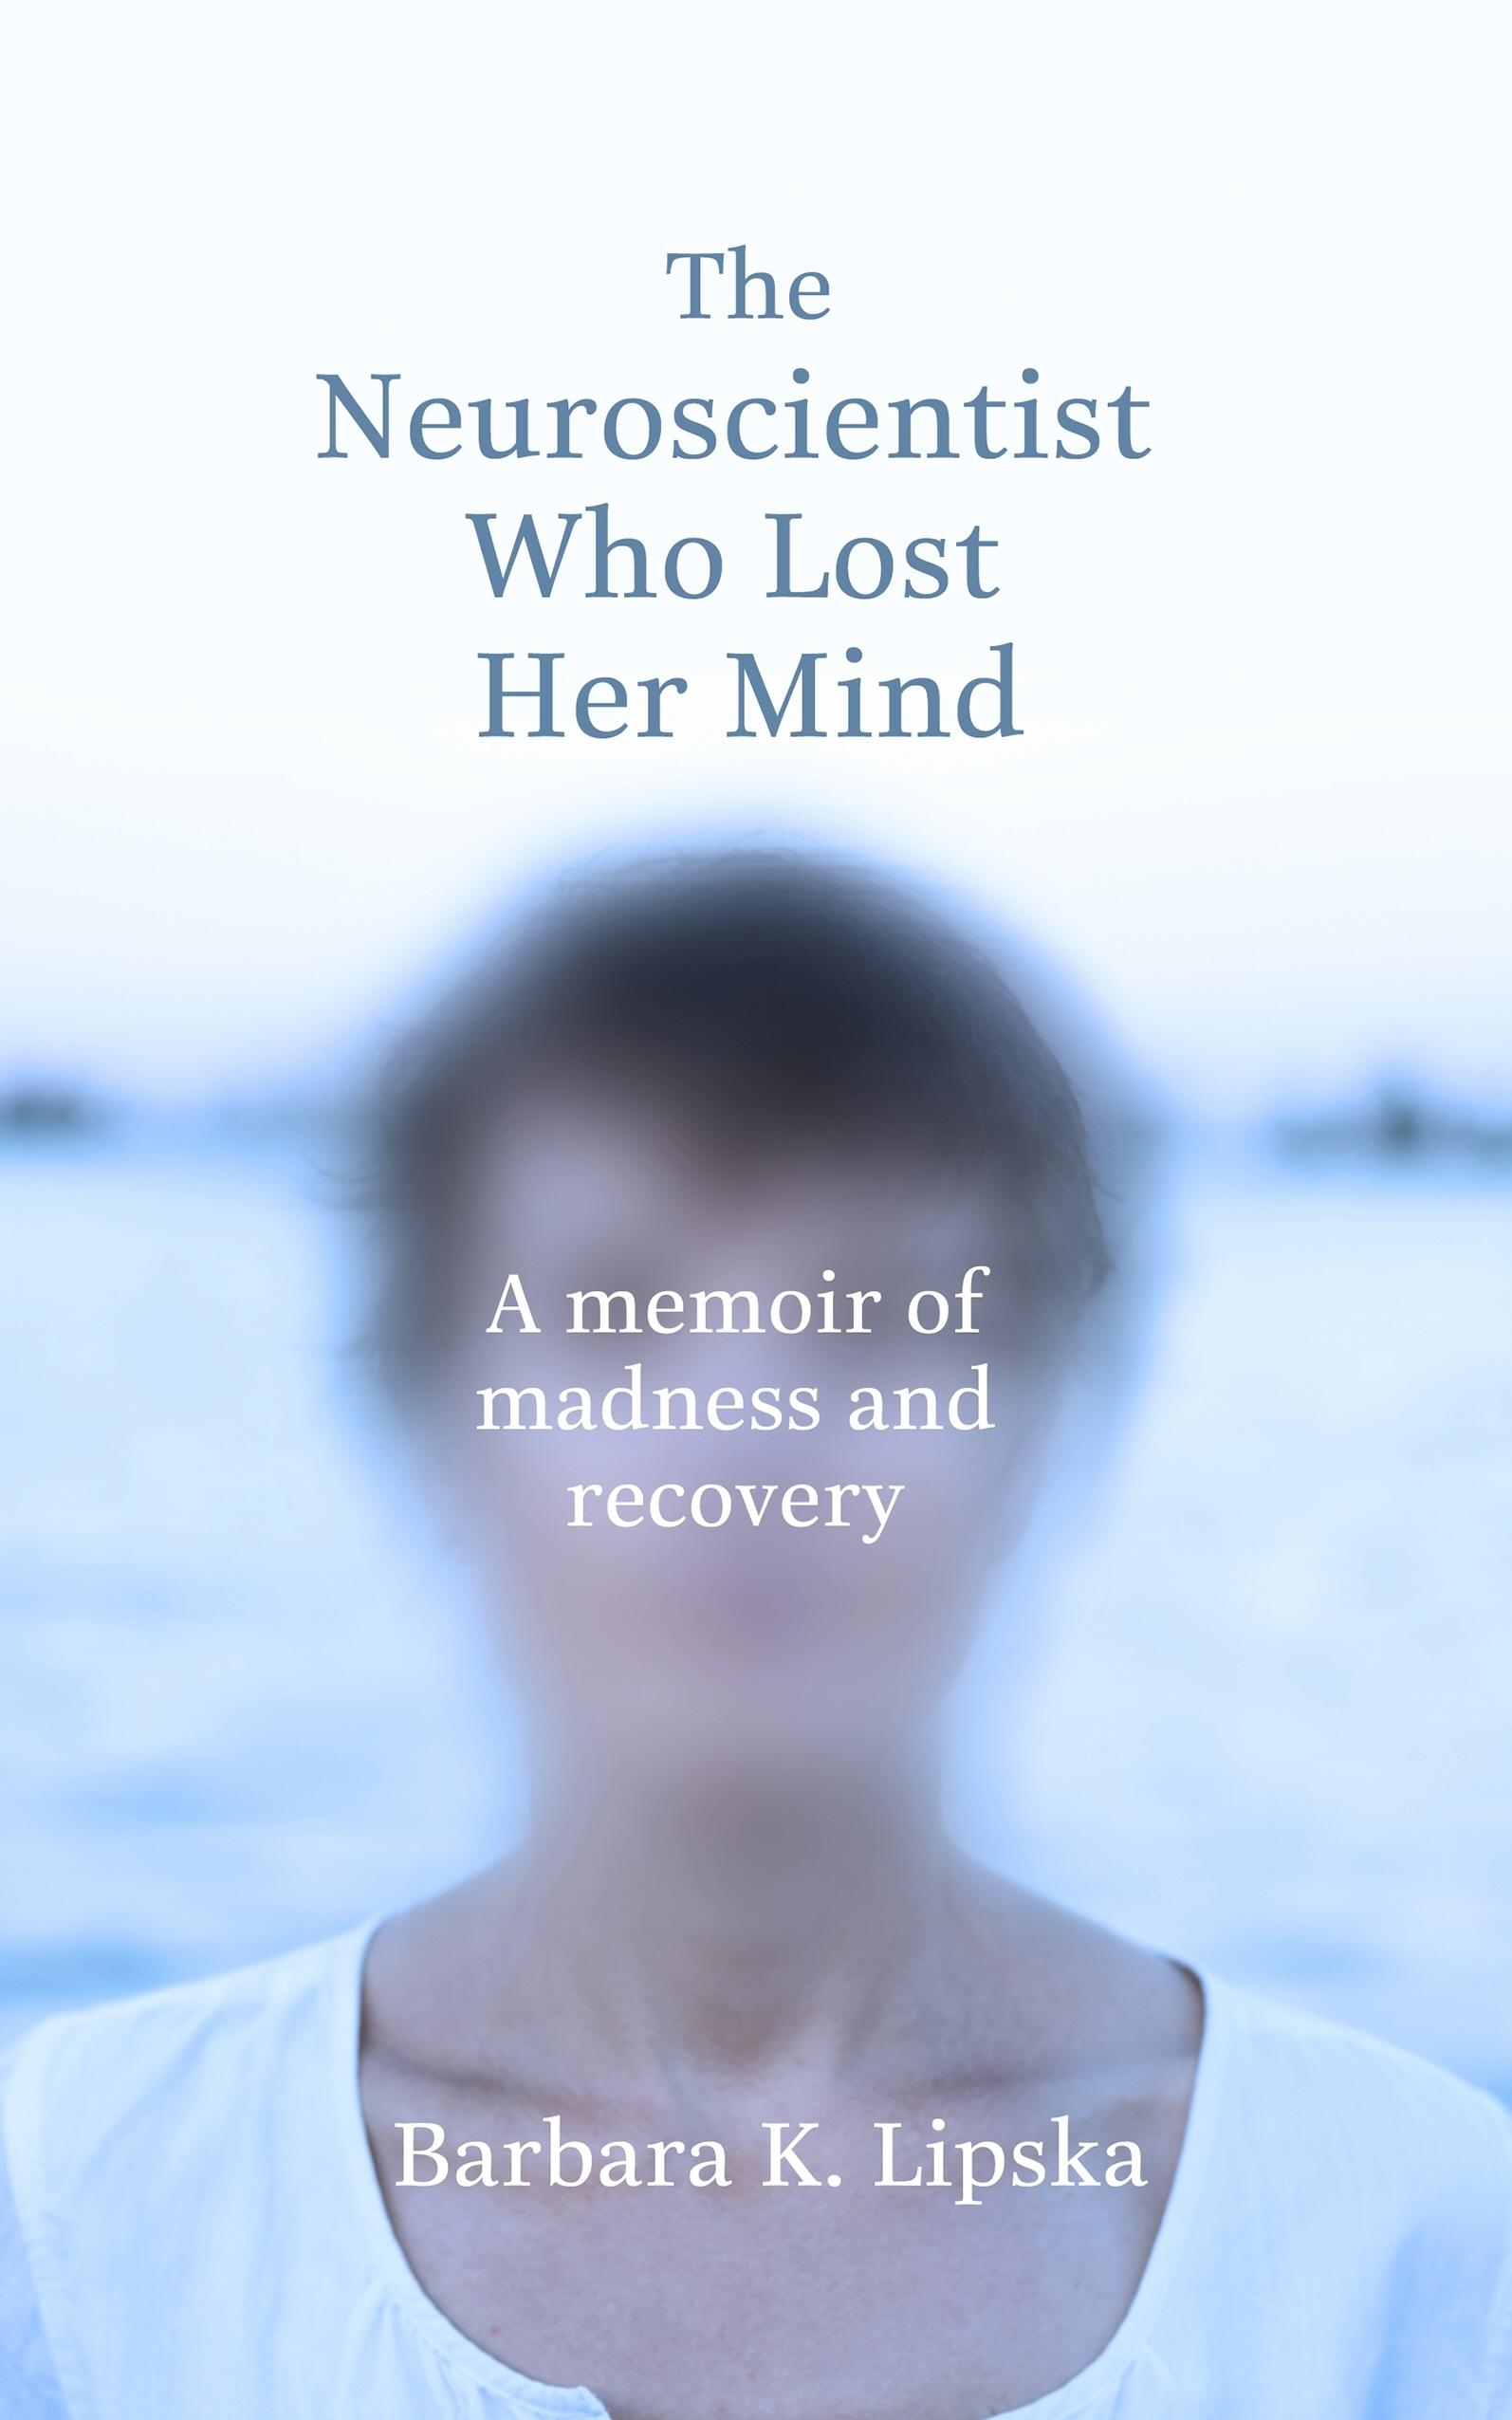 The Neuroscientist Who Lost Her Mind: A Memoir of MadnessandRecovery